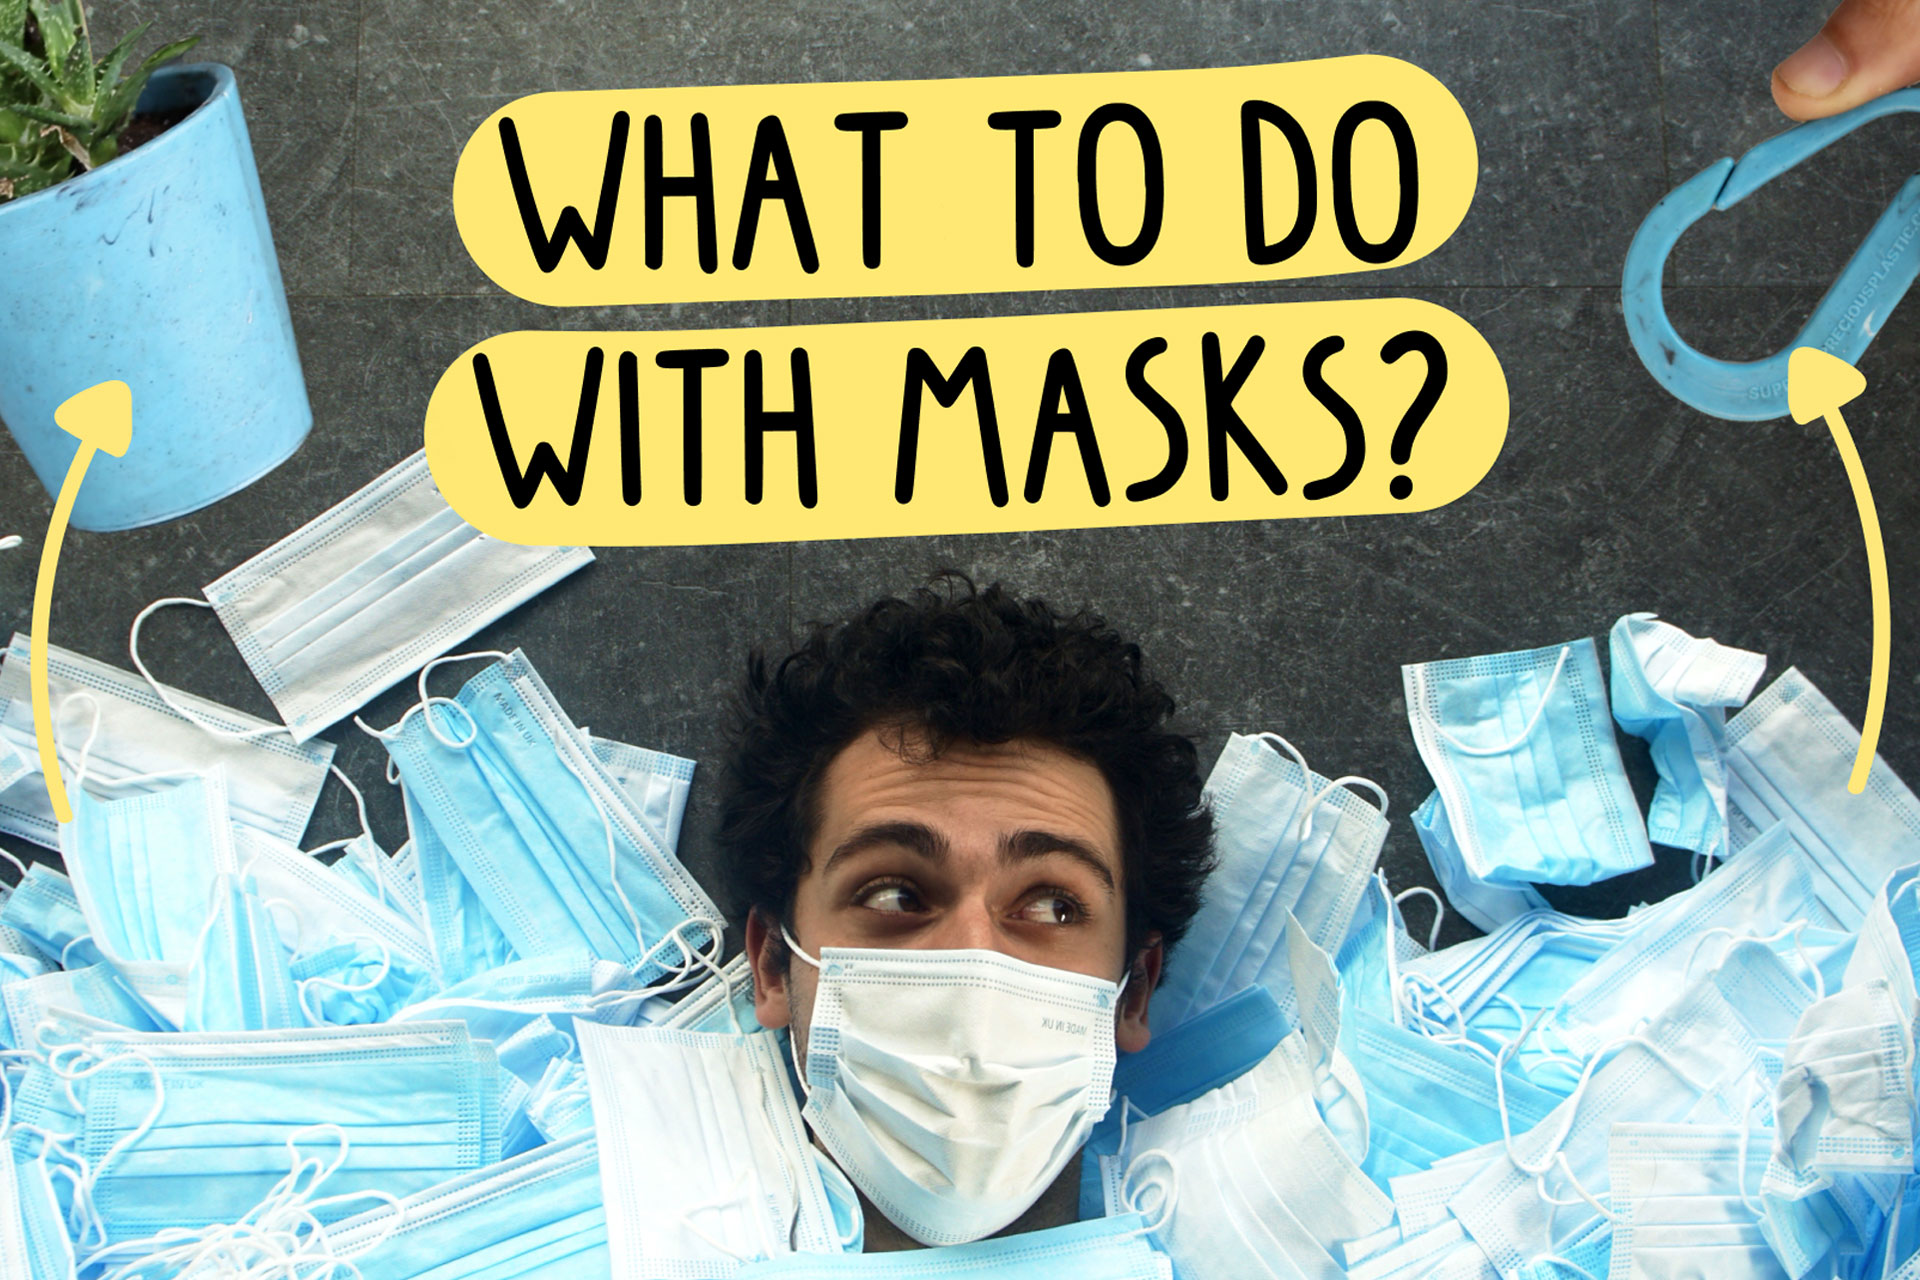 Man covered in facemasks